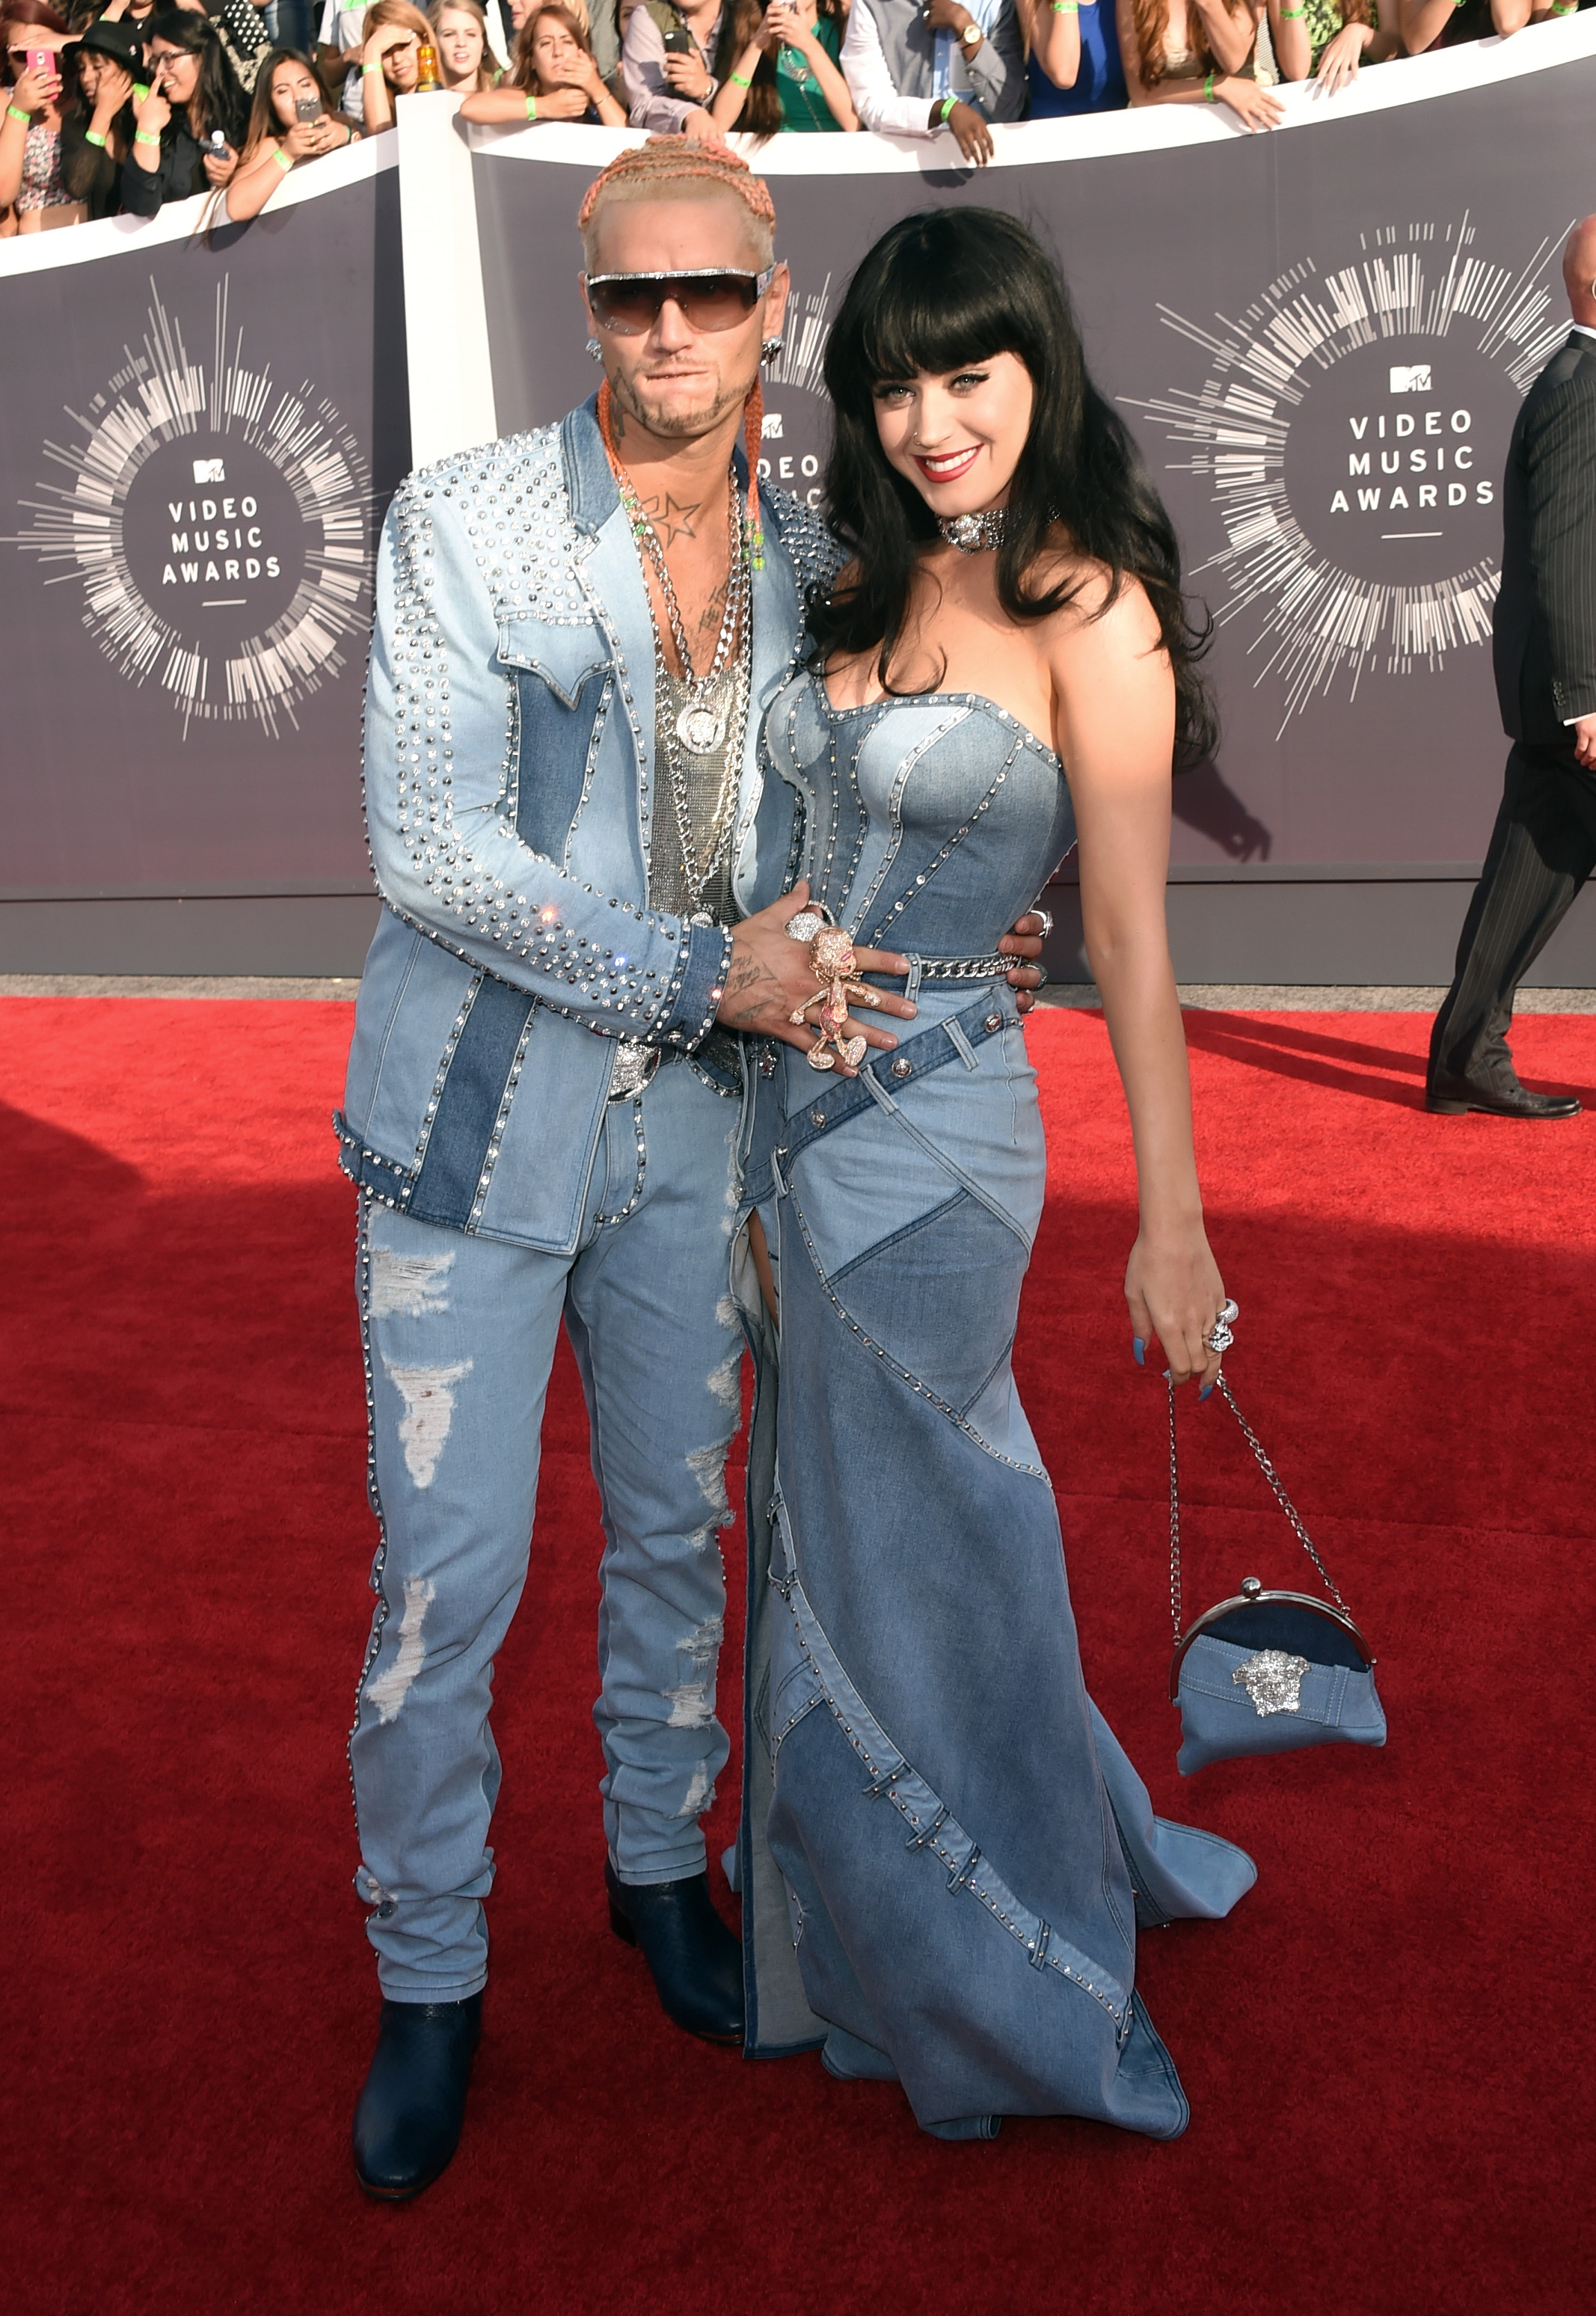 INGLEWOOD, CA - AUGUST 24:  Rapper Riff Raff (L) and singer Katy Perry attend the 2014 MTV Video Music Awards at The Forum on August 24, 2014 in Inglewood, California.  (Photo by Jason Merritt/Getty Images for MTV)